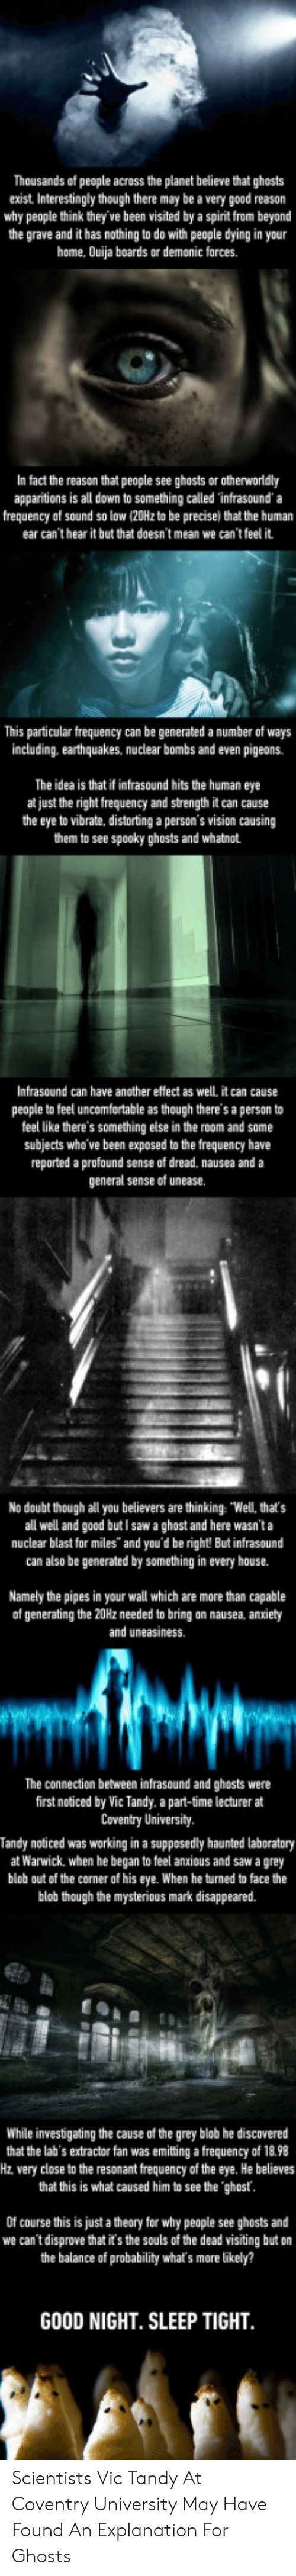 """warwick: Thousands of people across the planet believe that ghosts  exist. Interestingly though there may be a very good reason  why people think they' ve been visited by a spirit from beyond  the grave and it has nothing to do with people dying in your  home, Ouija boards or demonic forces.  In fact the reason that people see ghosts or otherworldly  apparitions is all down to something called infrasound' a  frequency of sound so low (20Hz to be precise) that the human  ear can't hear it but that doesn't mean we can't feel it  This particular frequency can be generated a number of ways  including. earthquakes, nuclear bombs and even pigeons.  The idea is that if infrasound hits the human eye  at just the right frequency and strength it can cause  the eye to vibrate, distorting a person's vision causing  them to see spooky ghosts and whatnot.  Infrasound can have another effect as well. it can cause  people to feel uncomfortable as though there's a person to  feel like there's something else in the room and some  subjects who' ve been exposed to the frequency have  reported a profound sense of dread, nausea and a  general sense of unease.  No doubt though all you believers are thinking: """"Well, that's  all well and good but I saw a ghost and here wasn'ta  nuclear blast for miles"""" and you'd be right But infrasound  can also be generated by something in every house.  Namely the pipes in your wall which are more than capable  of generating the 20Hz needed to bring on nausea, anxiety  and uneasiness.  The connection between infrasound and ghosts were  first noticed by Vic Tandy. a part-time lecturer at  Coventry University  Tandy noticed was working in a supposedly haunted laboratory  at Warwick, when he began to feel anxious and saw a grey  blob out of the corner of his eye. When he turned to face the  blob though the mysterious  mark disappeared.  While investigating the cause of the grey blob he discovered  that the lab's extractor fan was emitting a frequency of 18.98"""